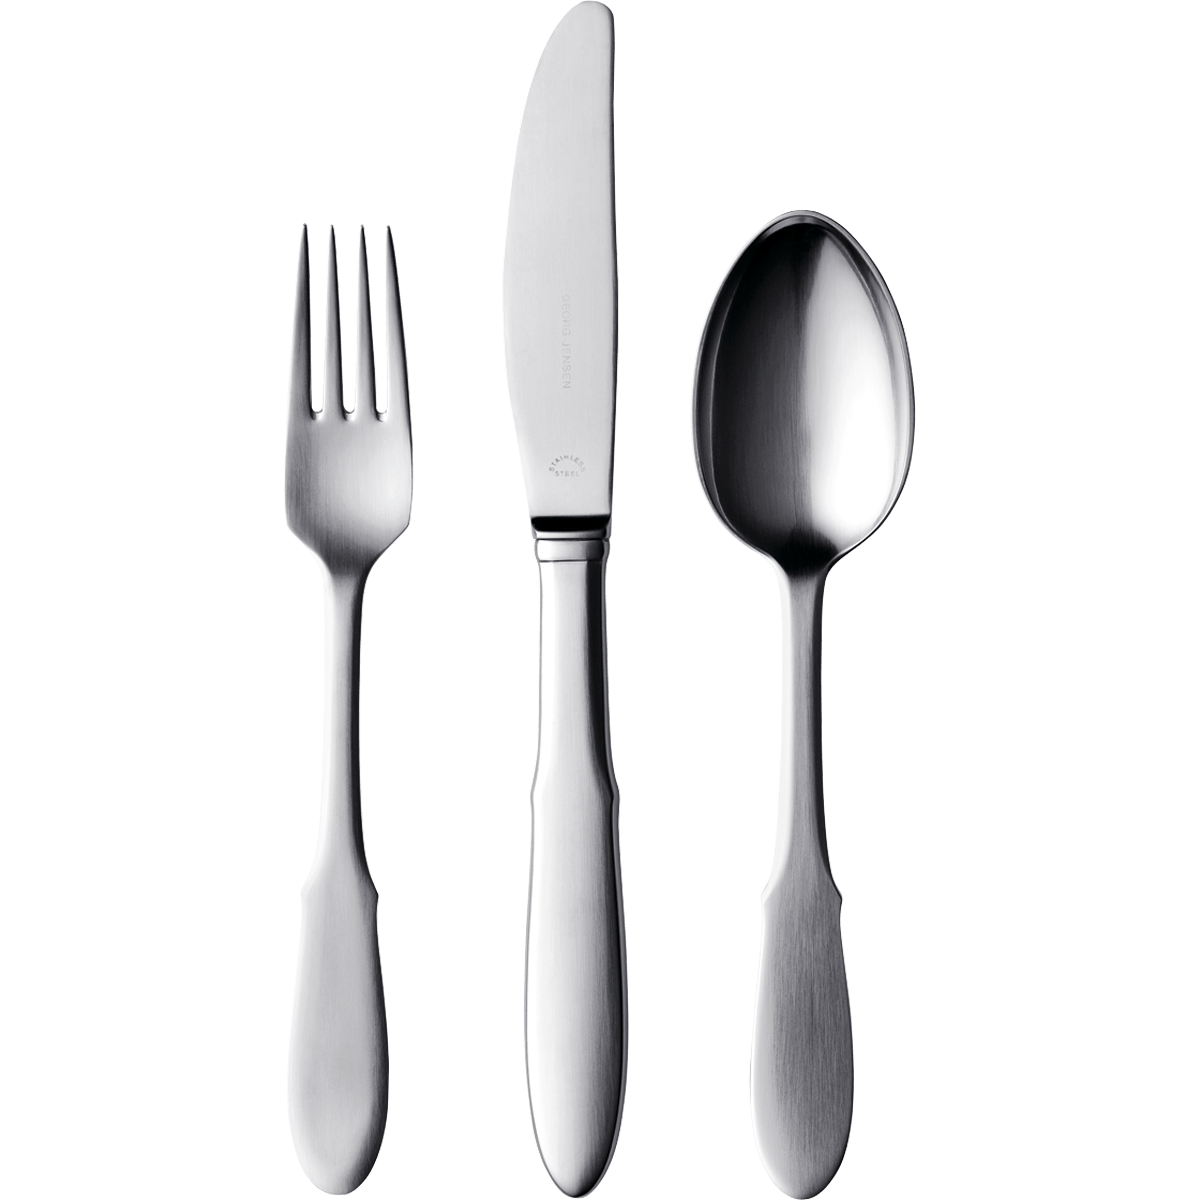 Spoon Transparent Background - Knife Fork Spoon transparent PNG - StickPNG